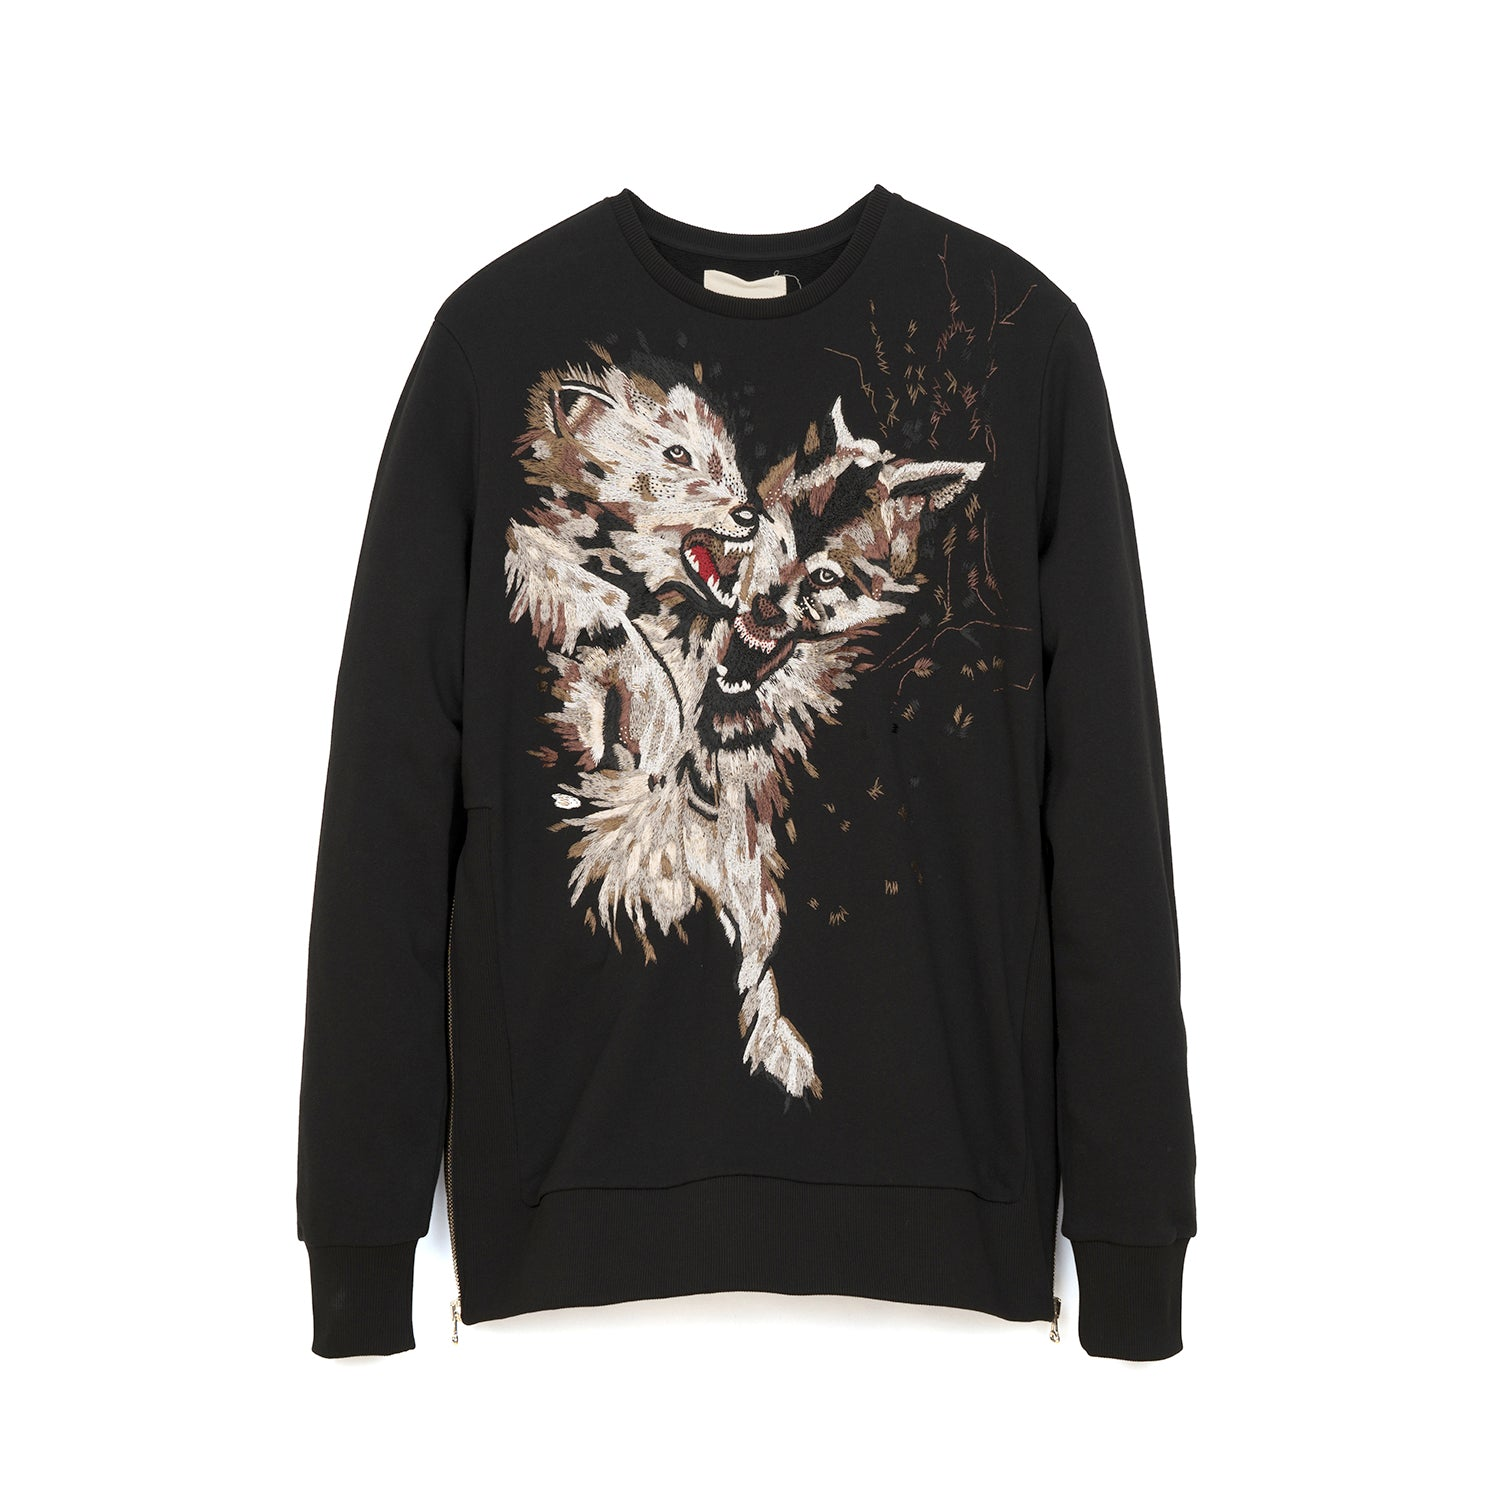 IH NOM UH NIT Embroidered Sweater - Pearls On The Back Black